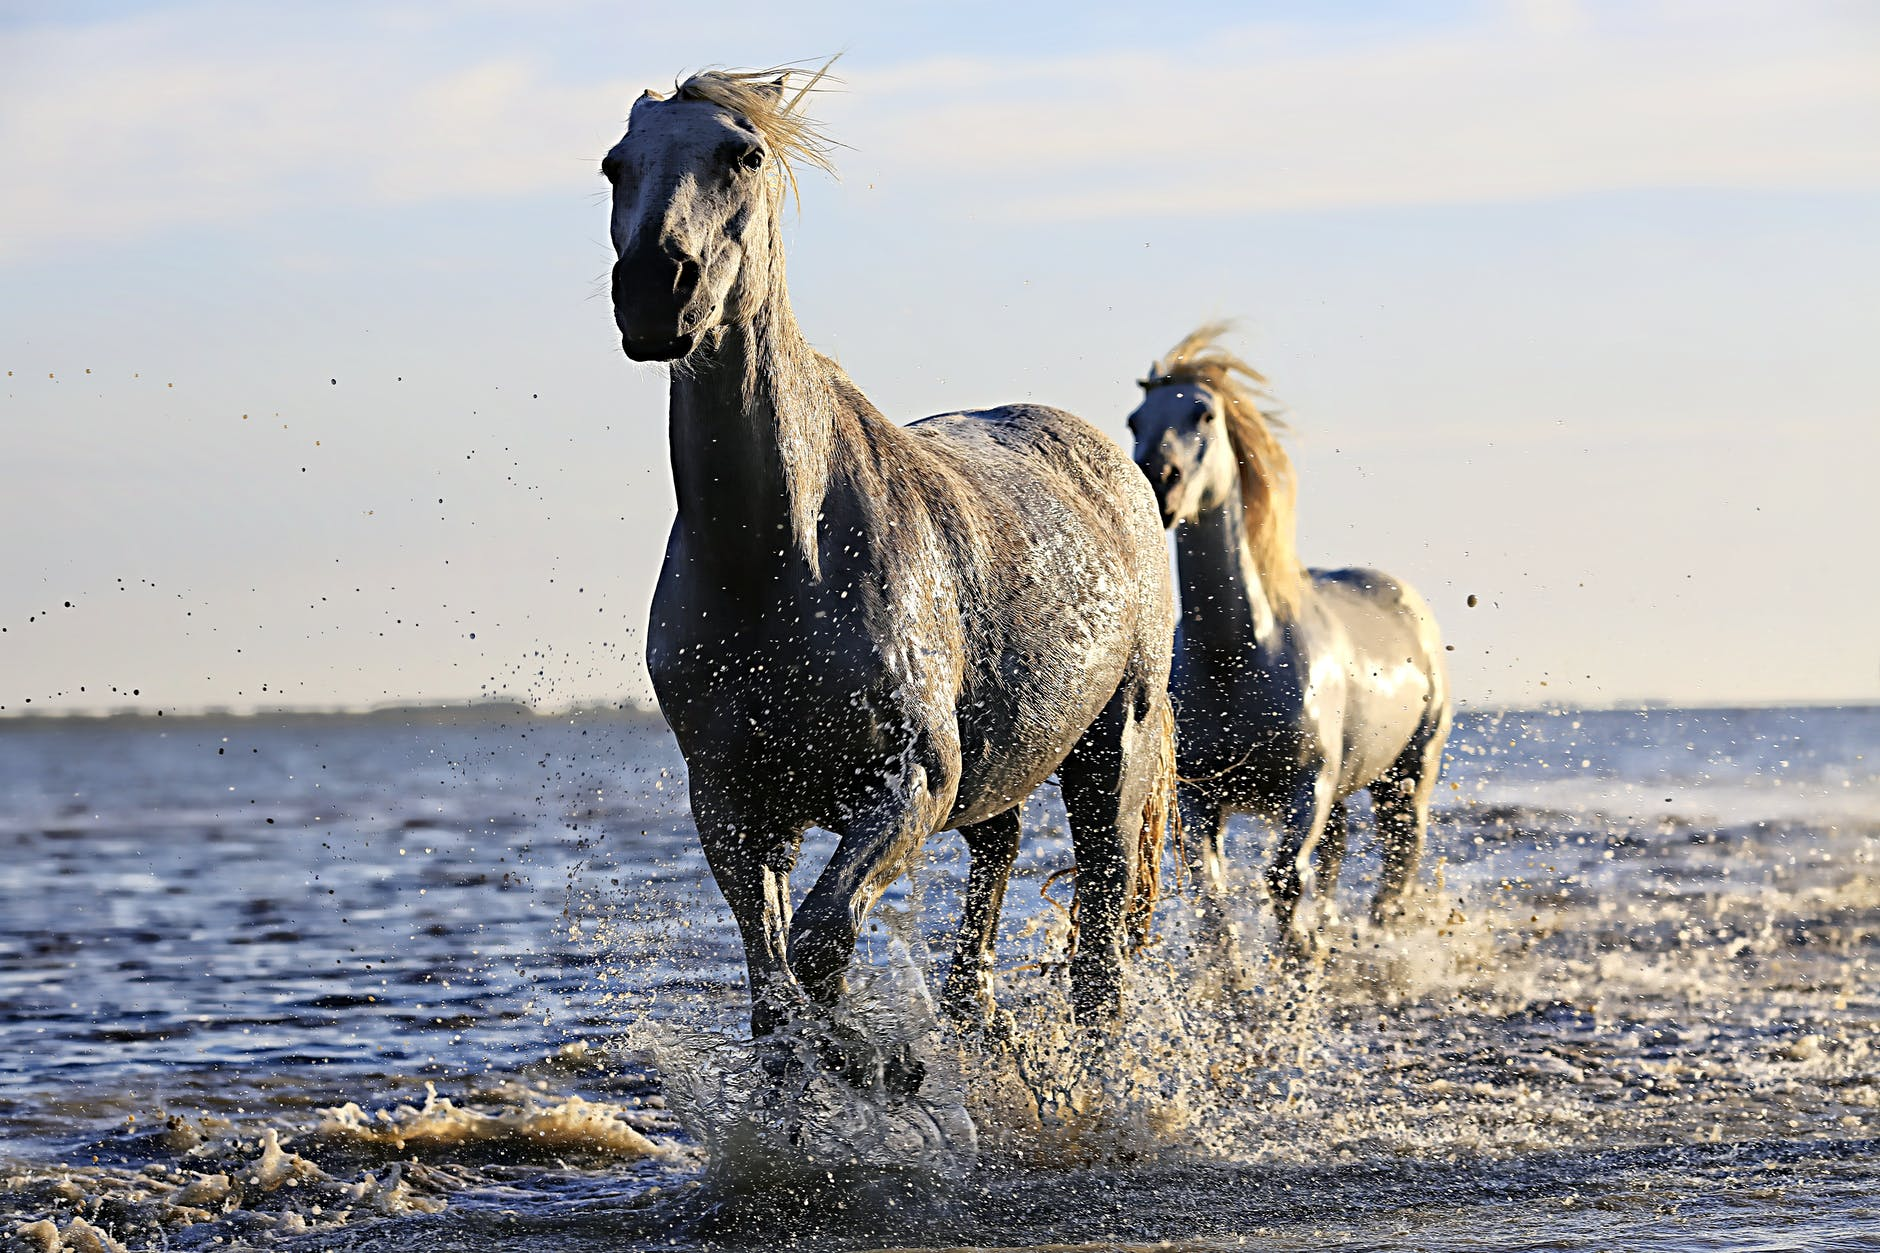 horse quotes 2-black-horse-running-on-body-of-water-under-sunny-sky